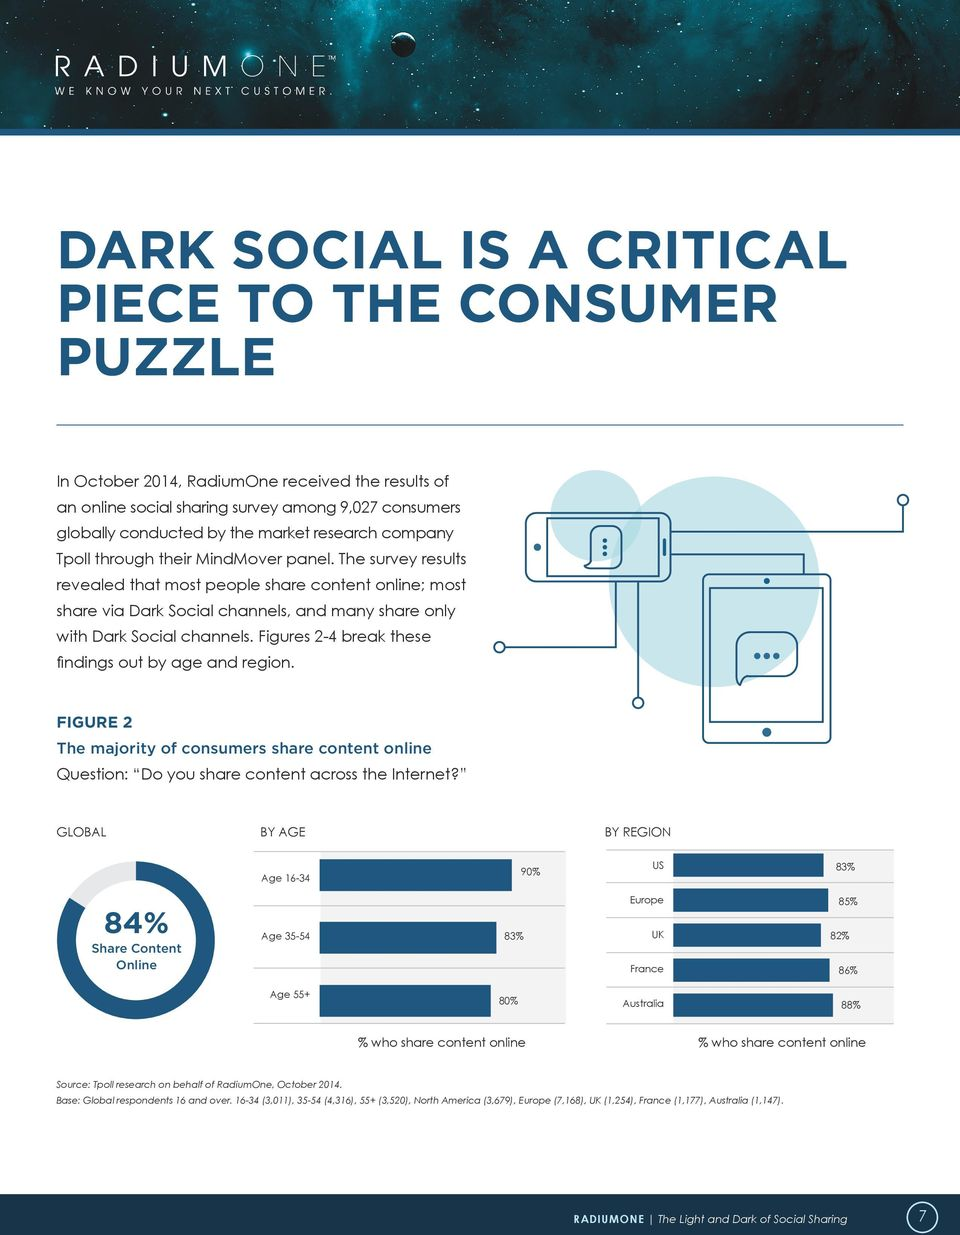 The survey results revealed that most people share content online; most share via Dark Social channels, and many share only with Dark Social channels.